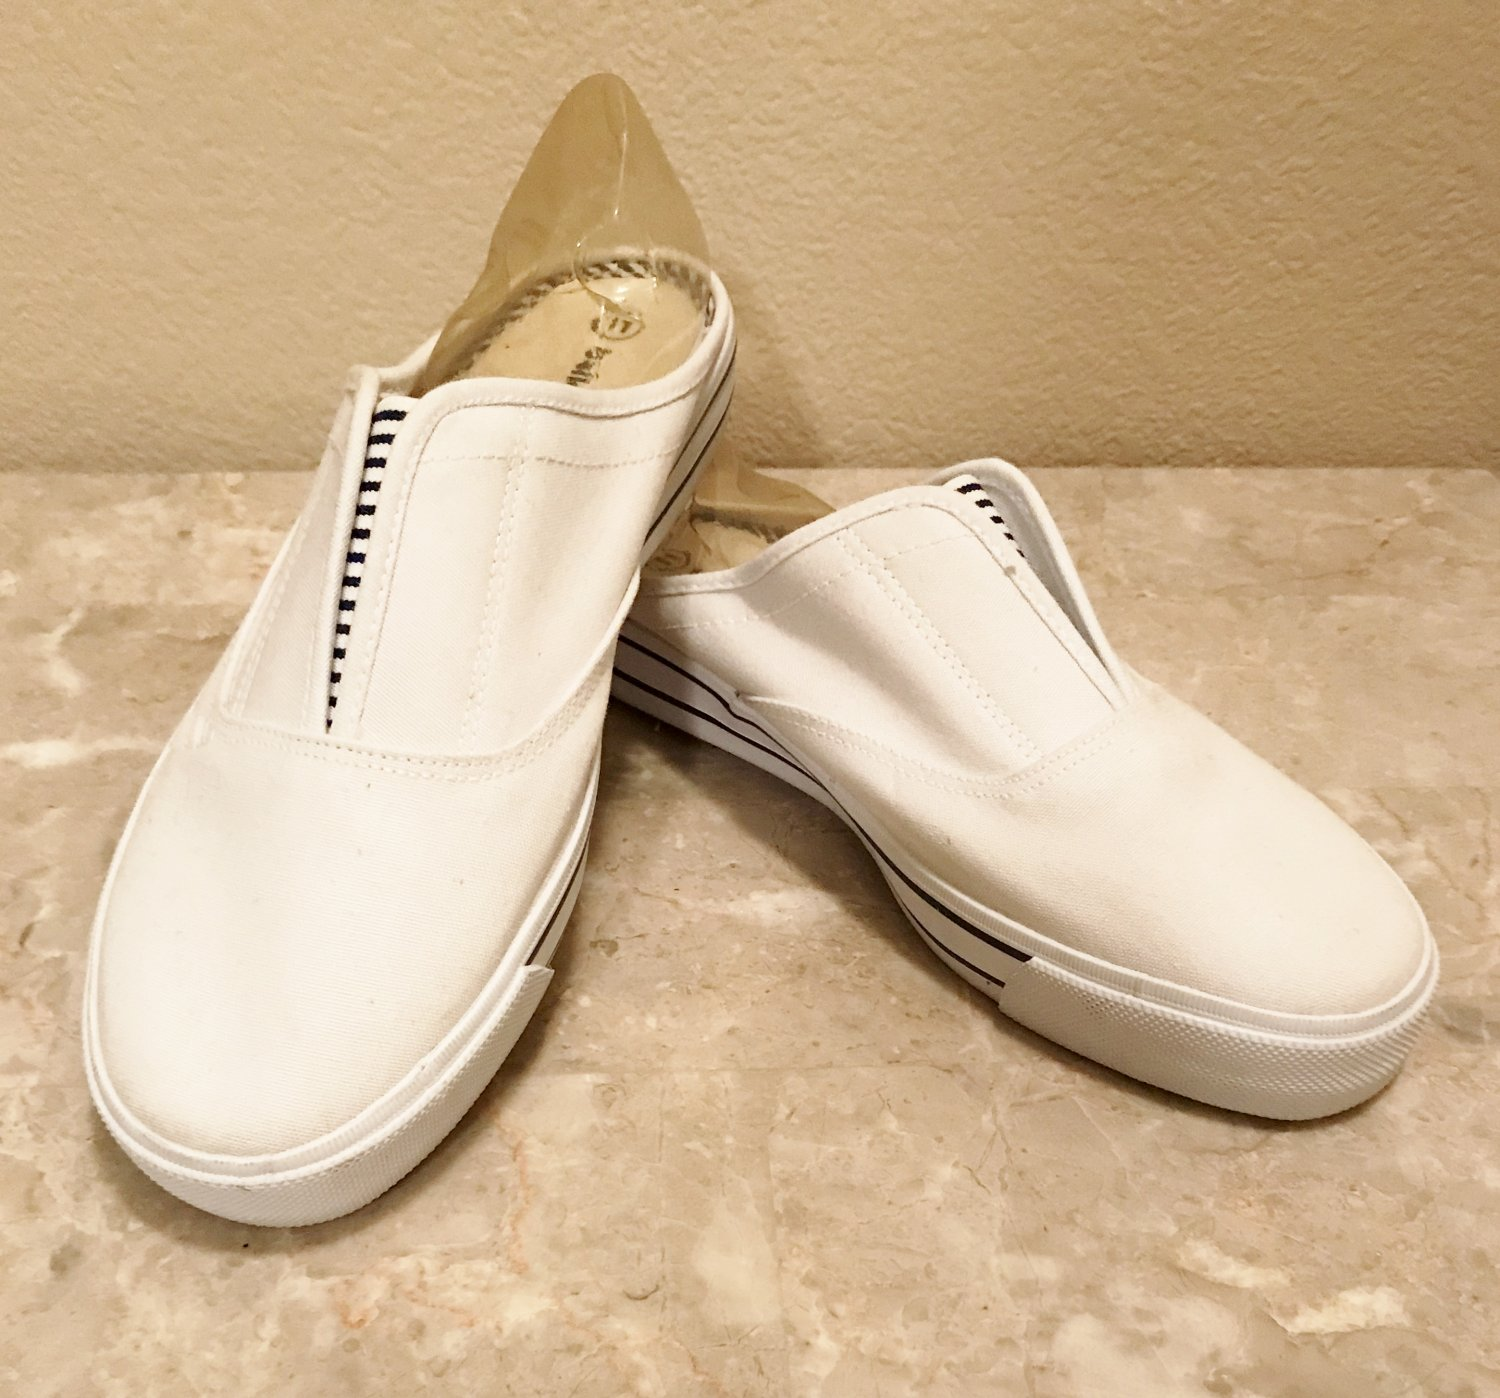 NWT Ladies SNEAKER MULES Athletic Shoes SIZE 11 WHITE Canvas Slip Ons